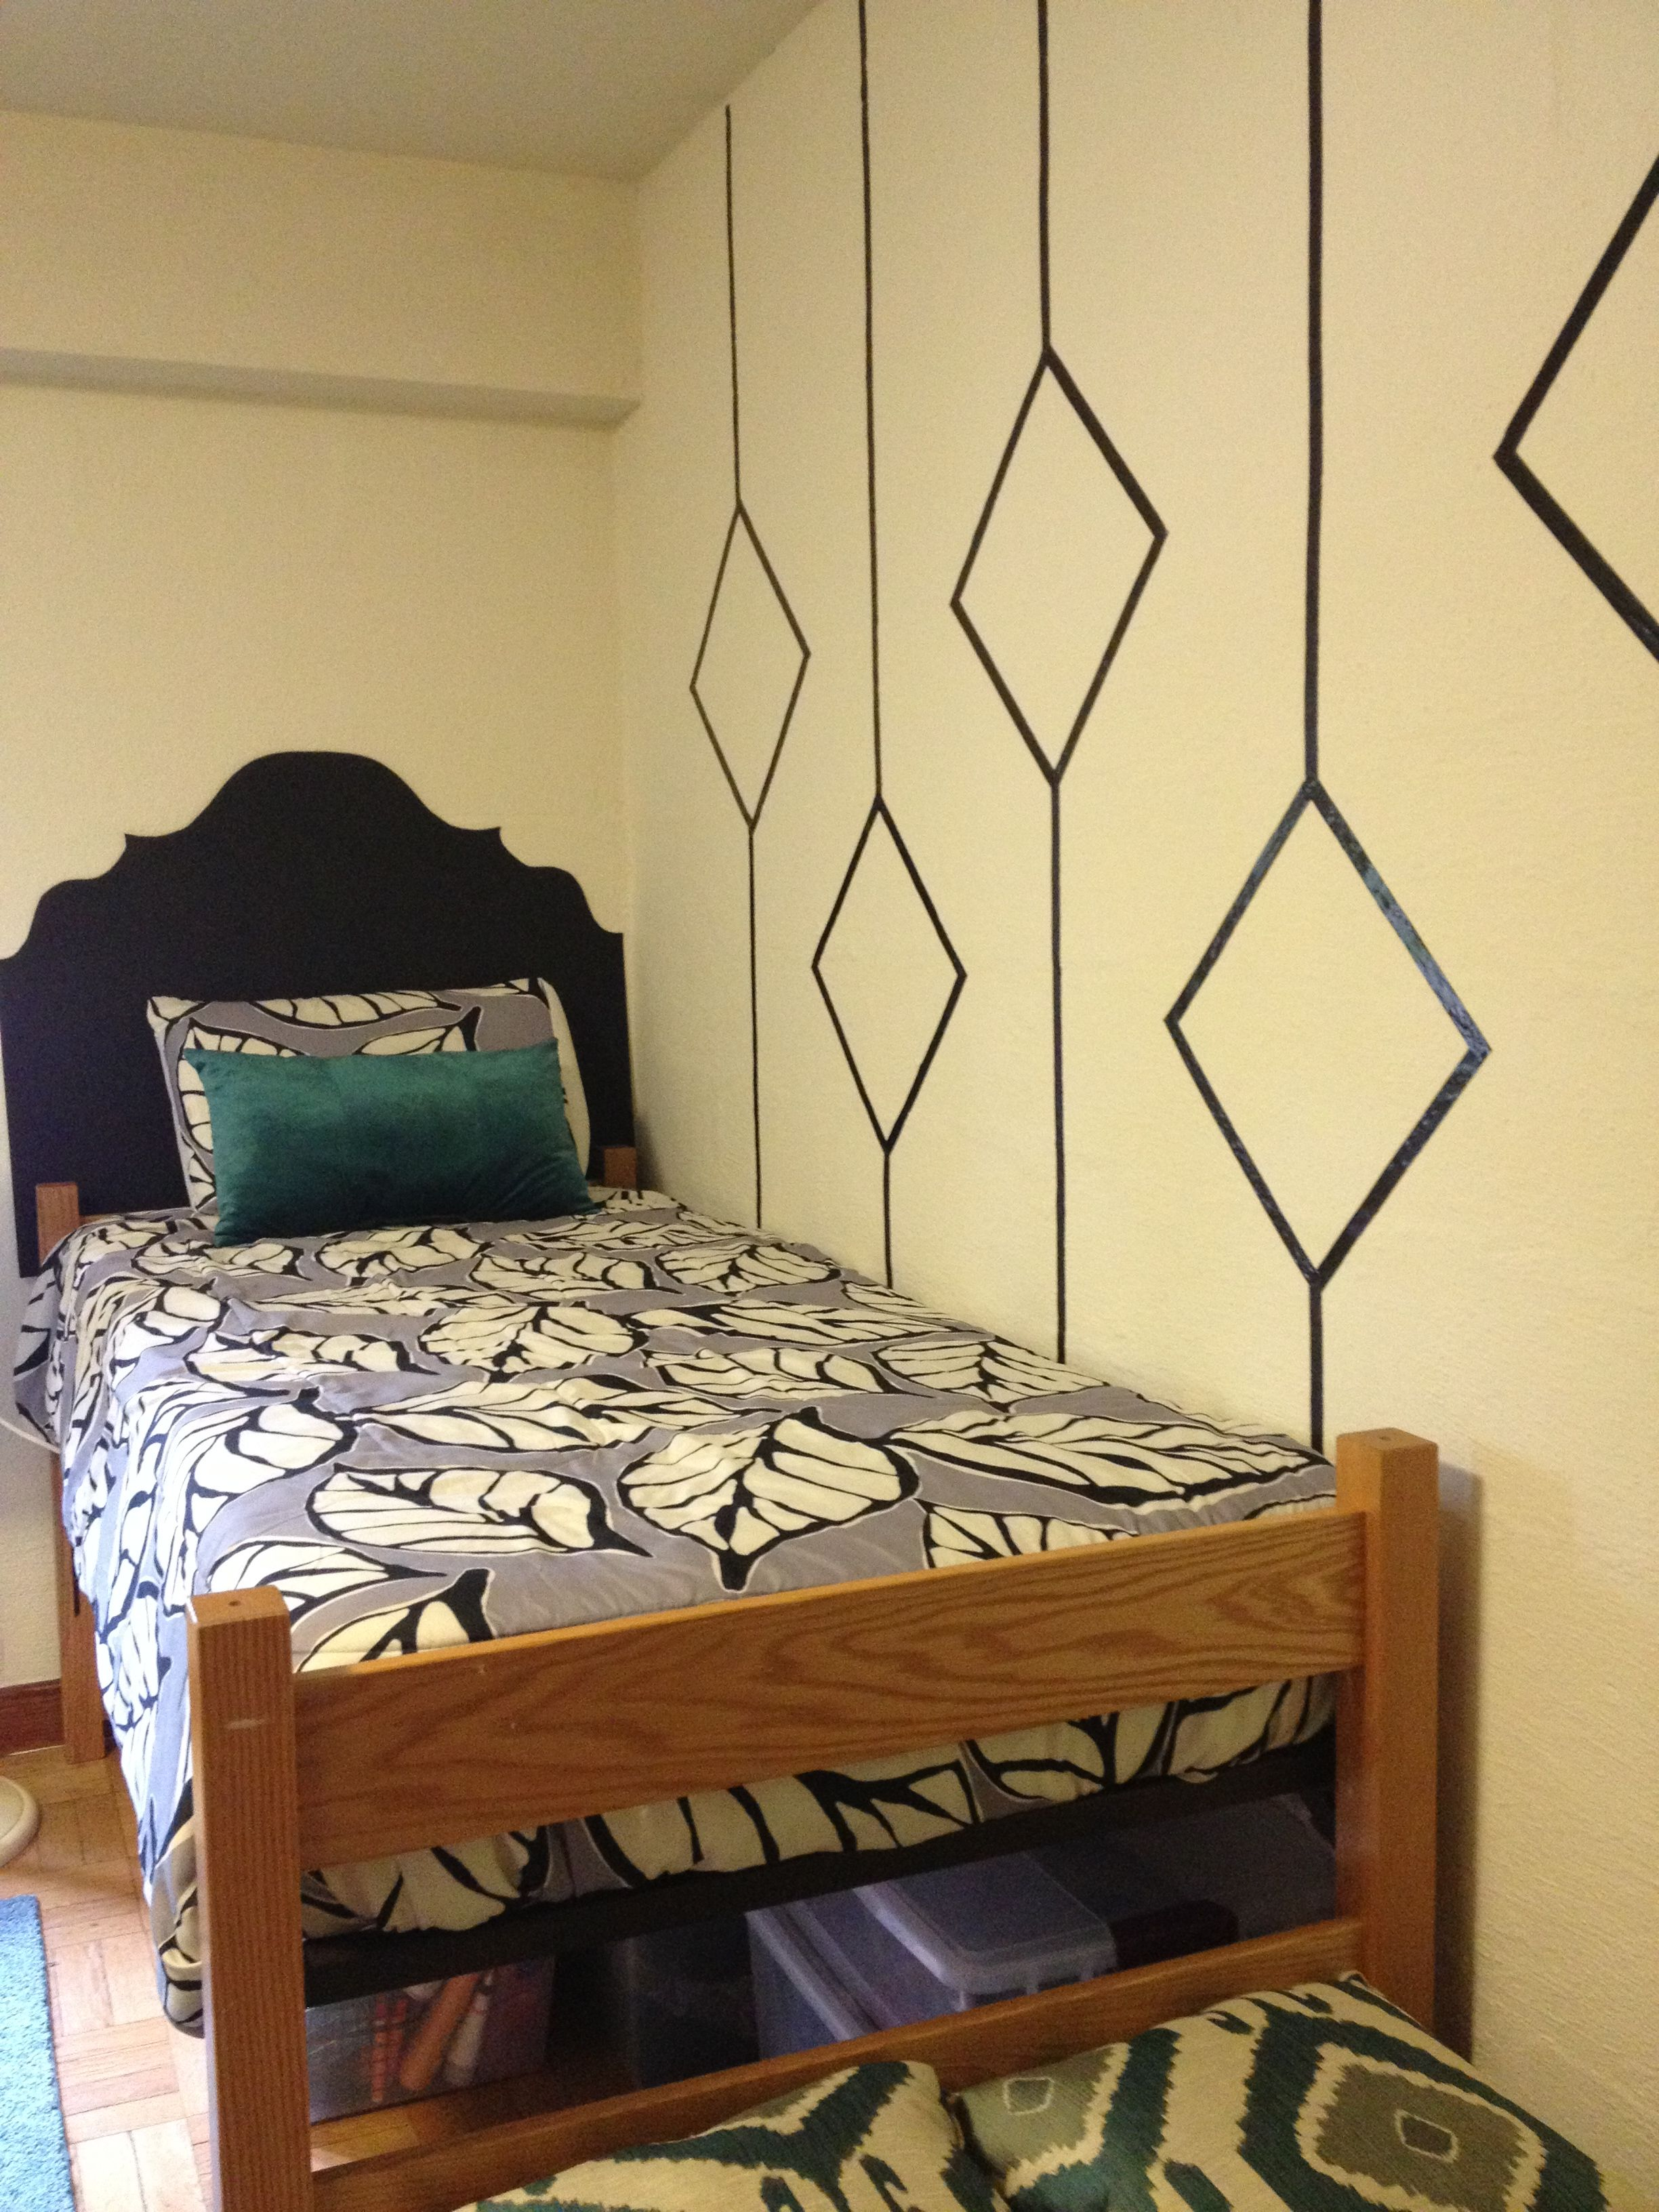 10 Dorm Room Decorating Ideas to Steal | Dorm wall decorations ...